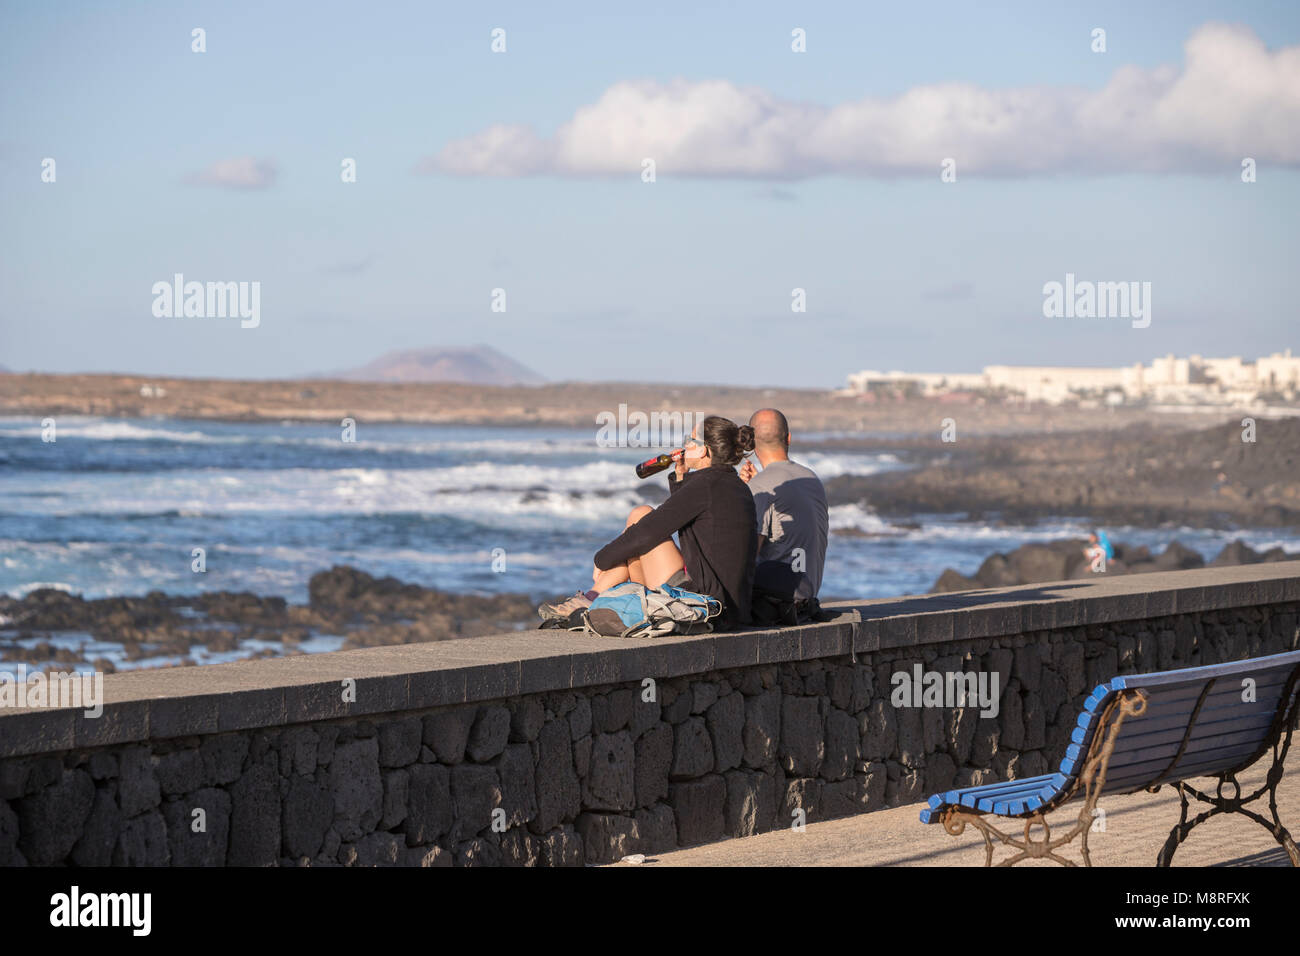 Young couple drinking while contemplating the sea in La Santa, Lanzarote, Canary Islands, Spain - Stock Image